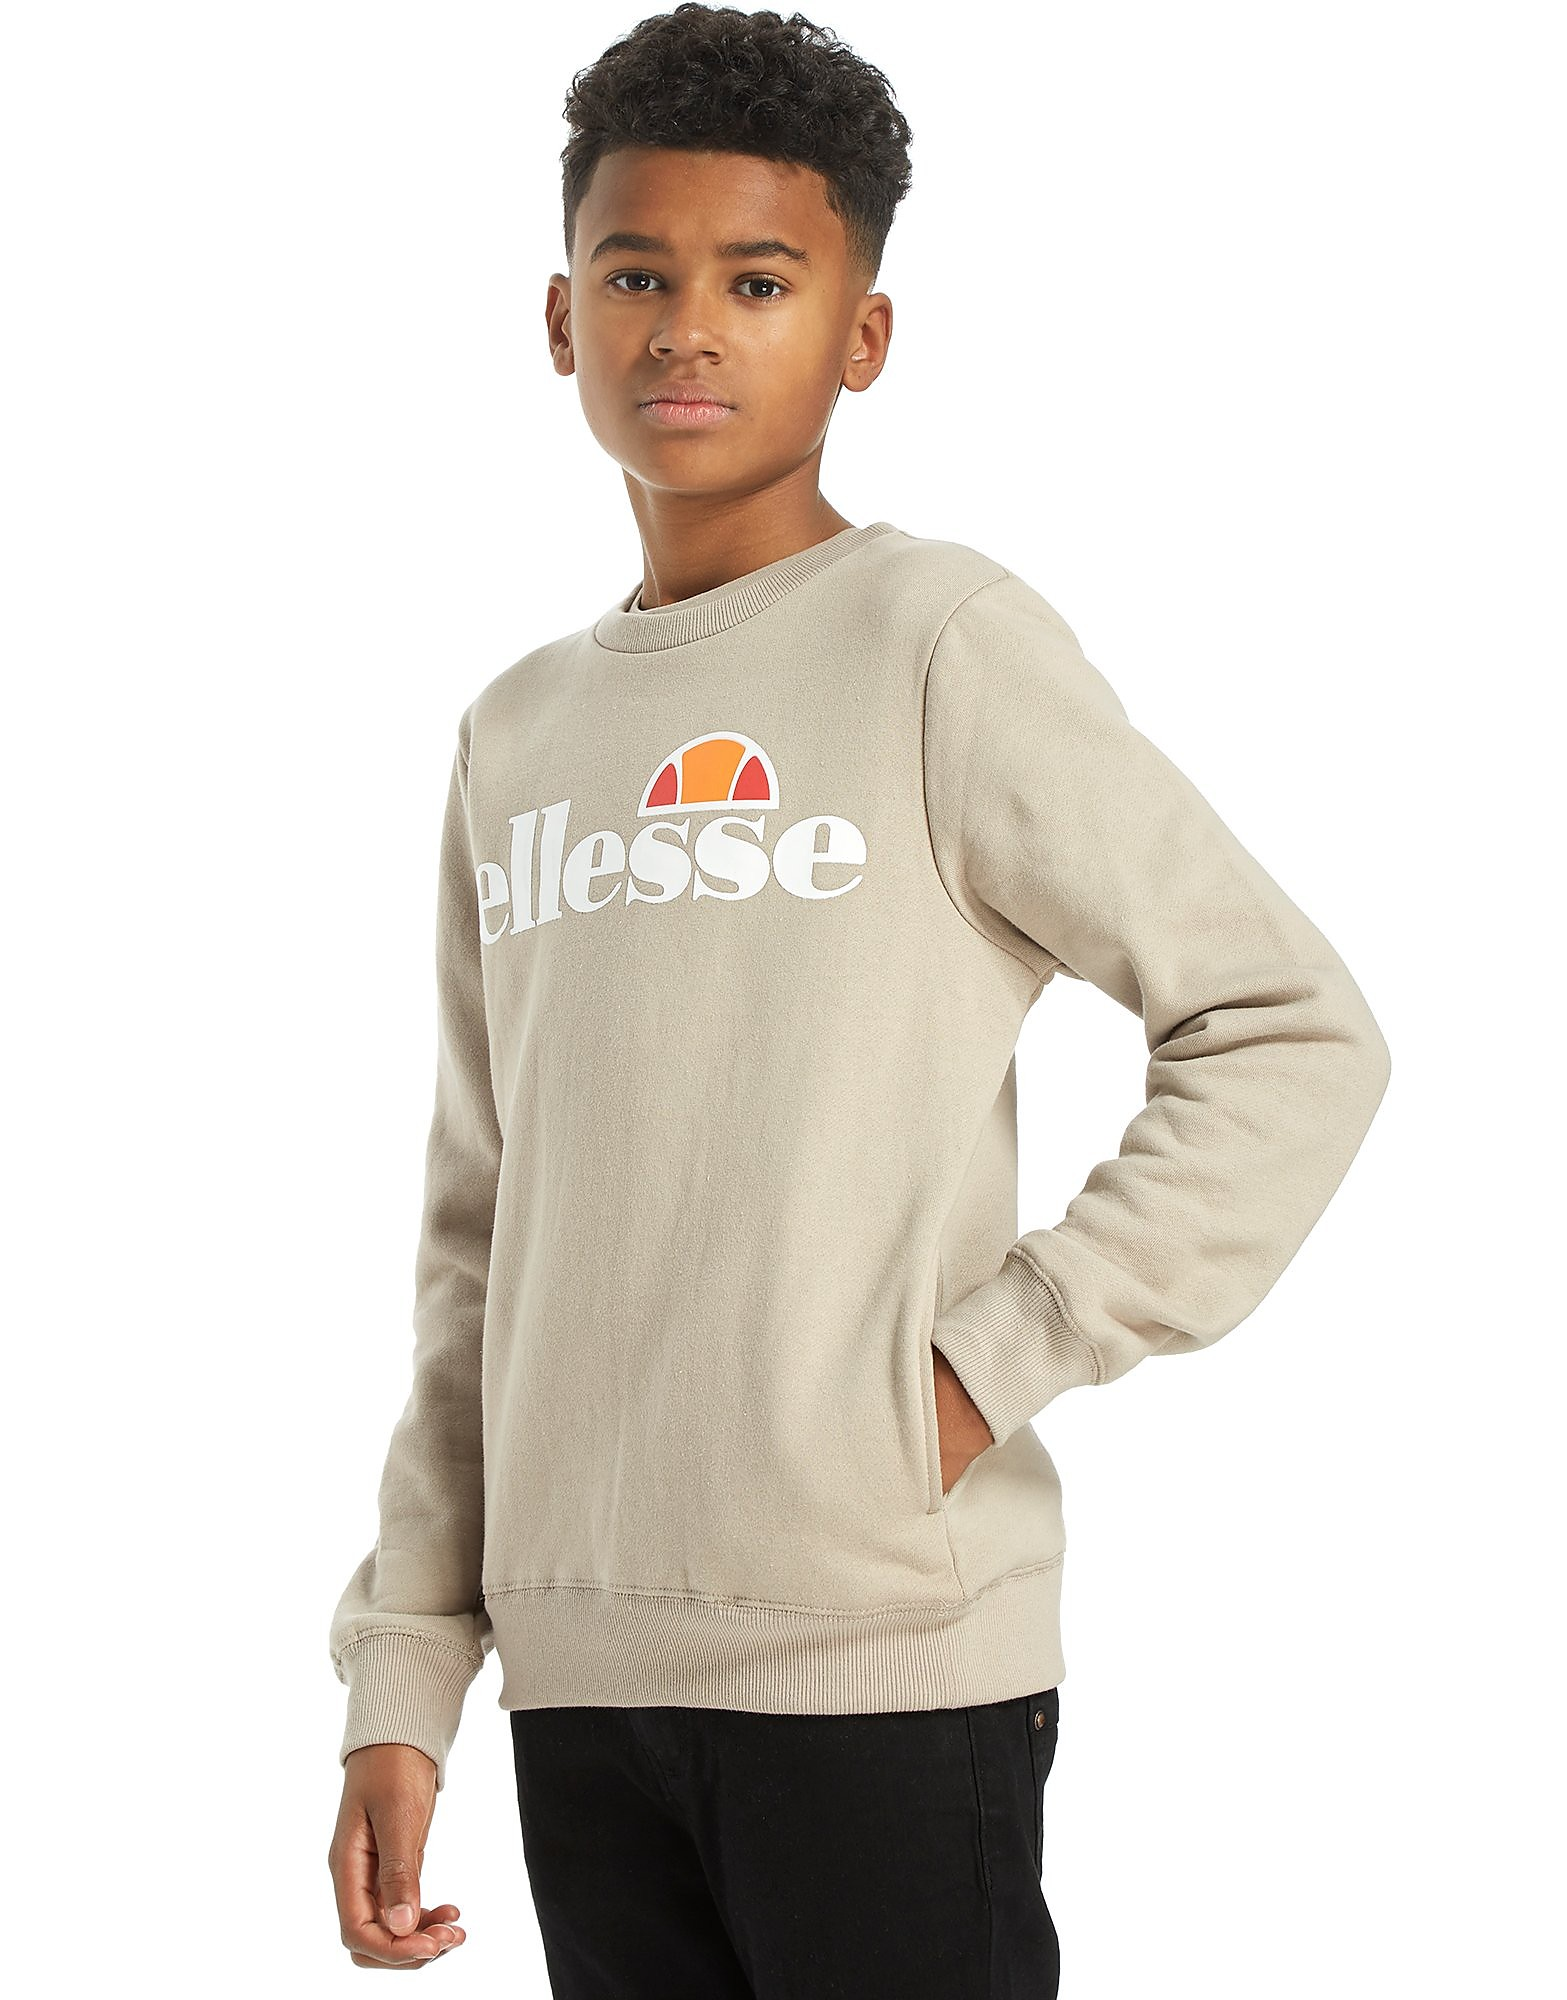 Ellesse Core Crew Sweatshirt Junior